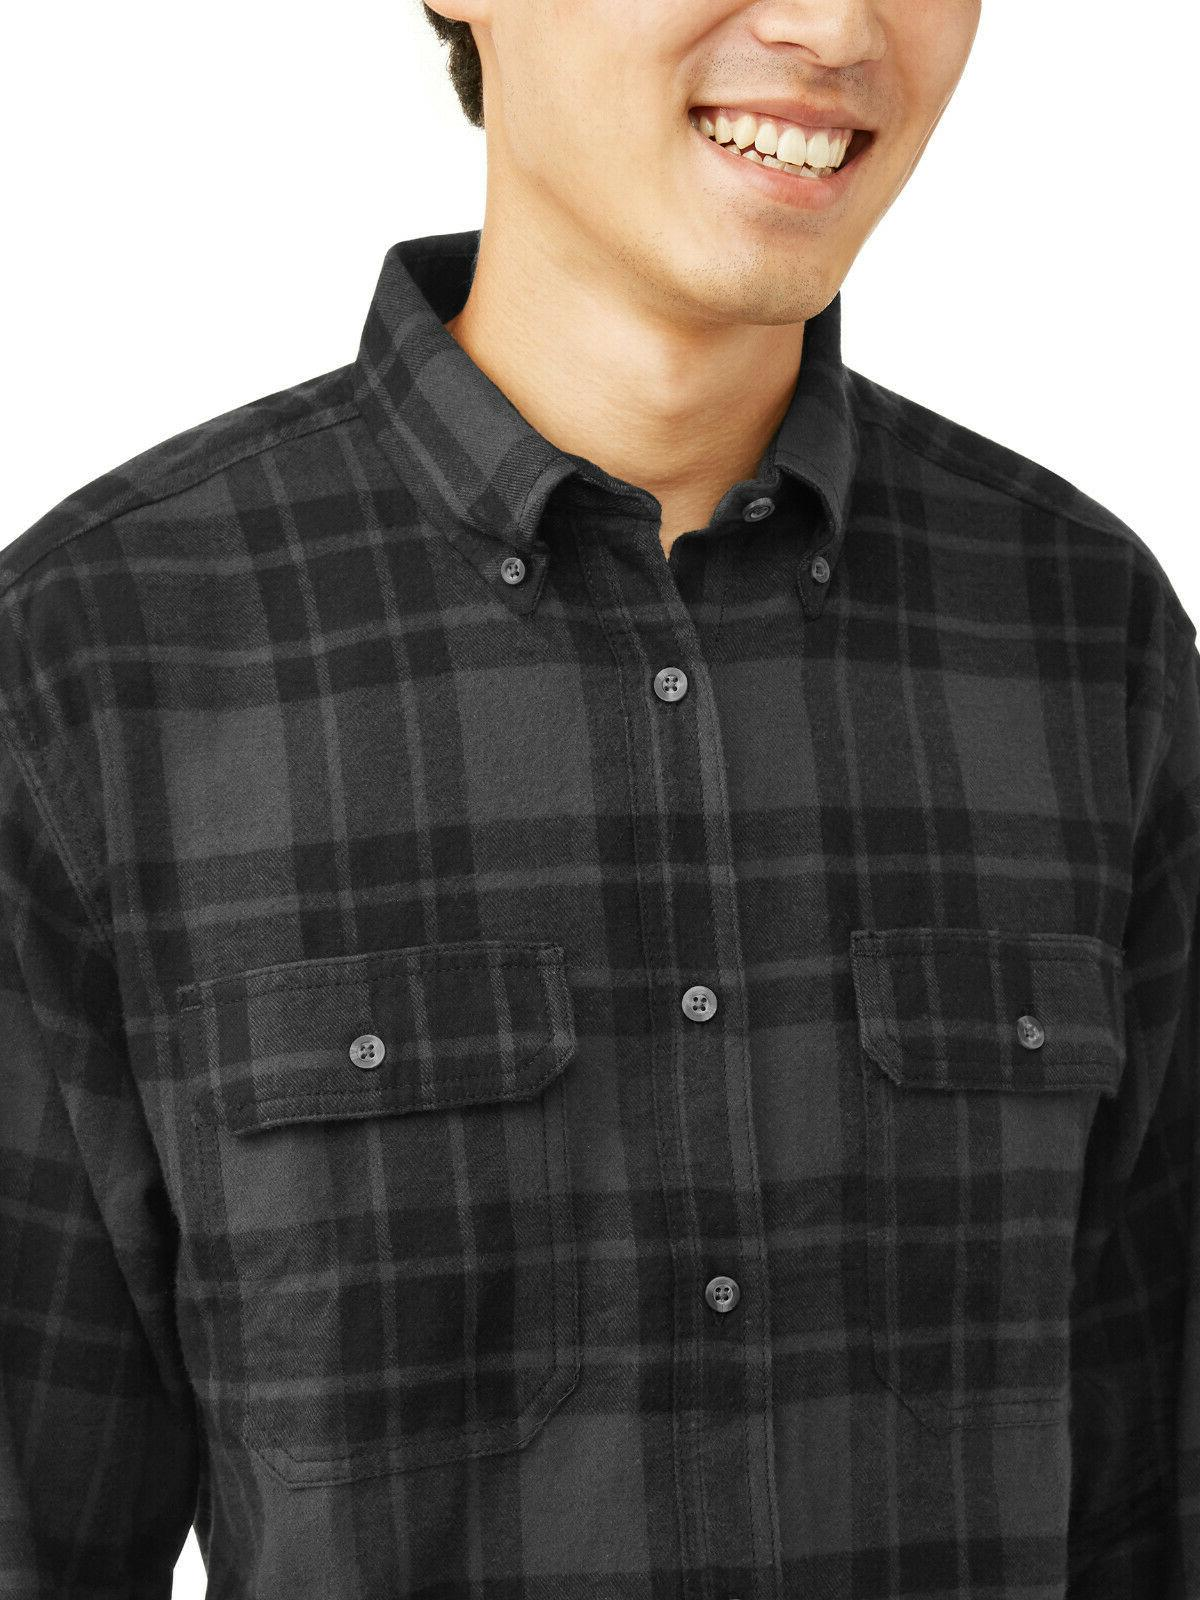 NEW George Plaid Button Down Shirt Size Large